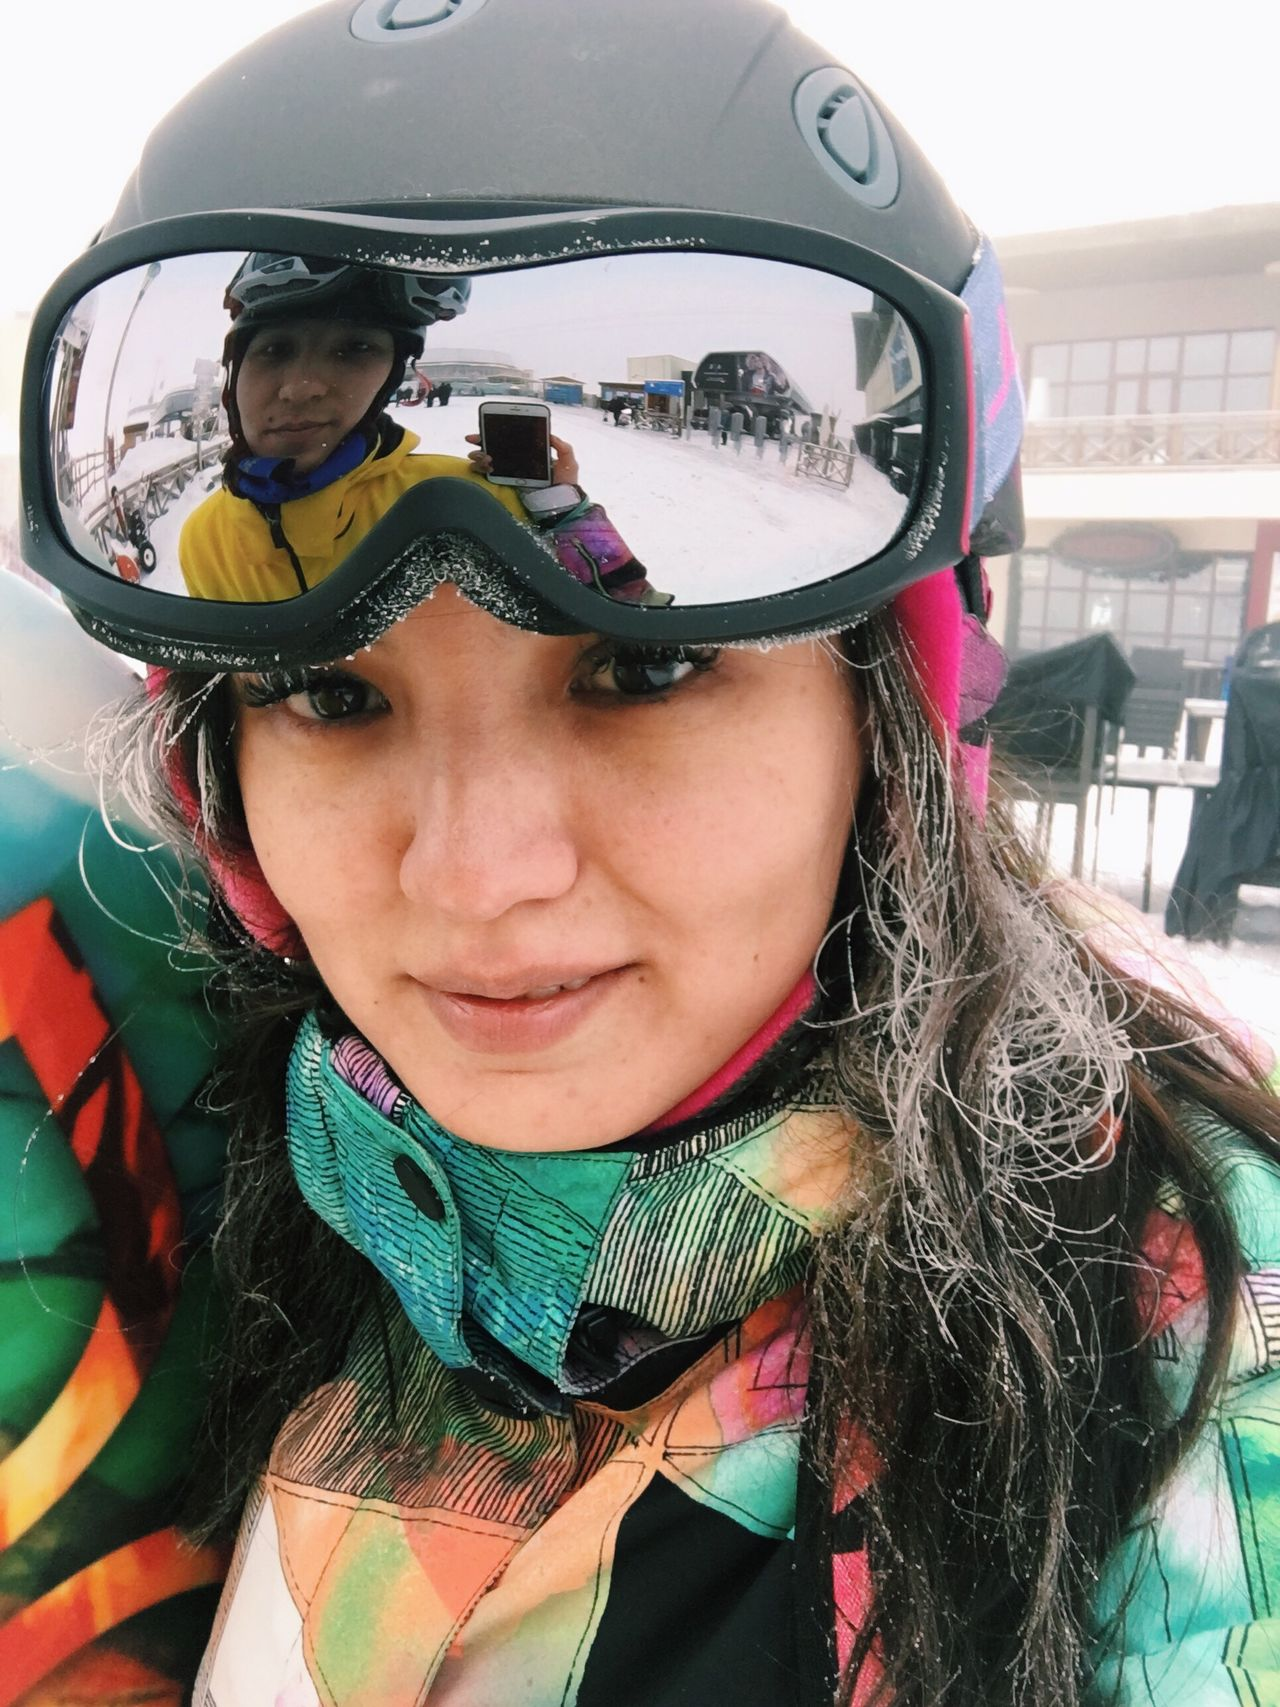 My Year My View Snow Sports Snow Snowboarding Snowboard Girl Close-up Ski Resort  Fun Extreme Snowboard Gear Gear Goggles Glasses